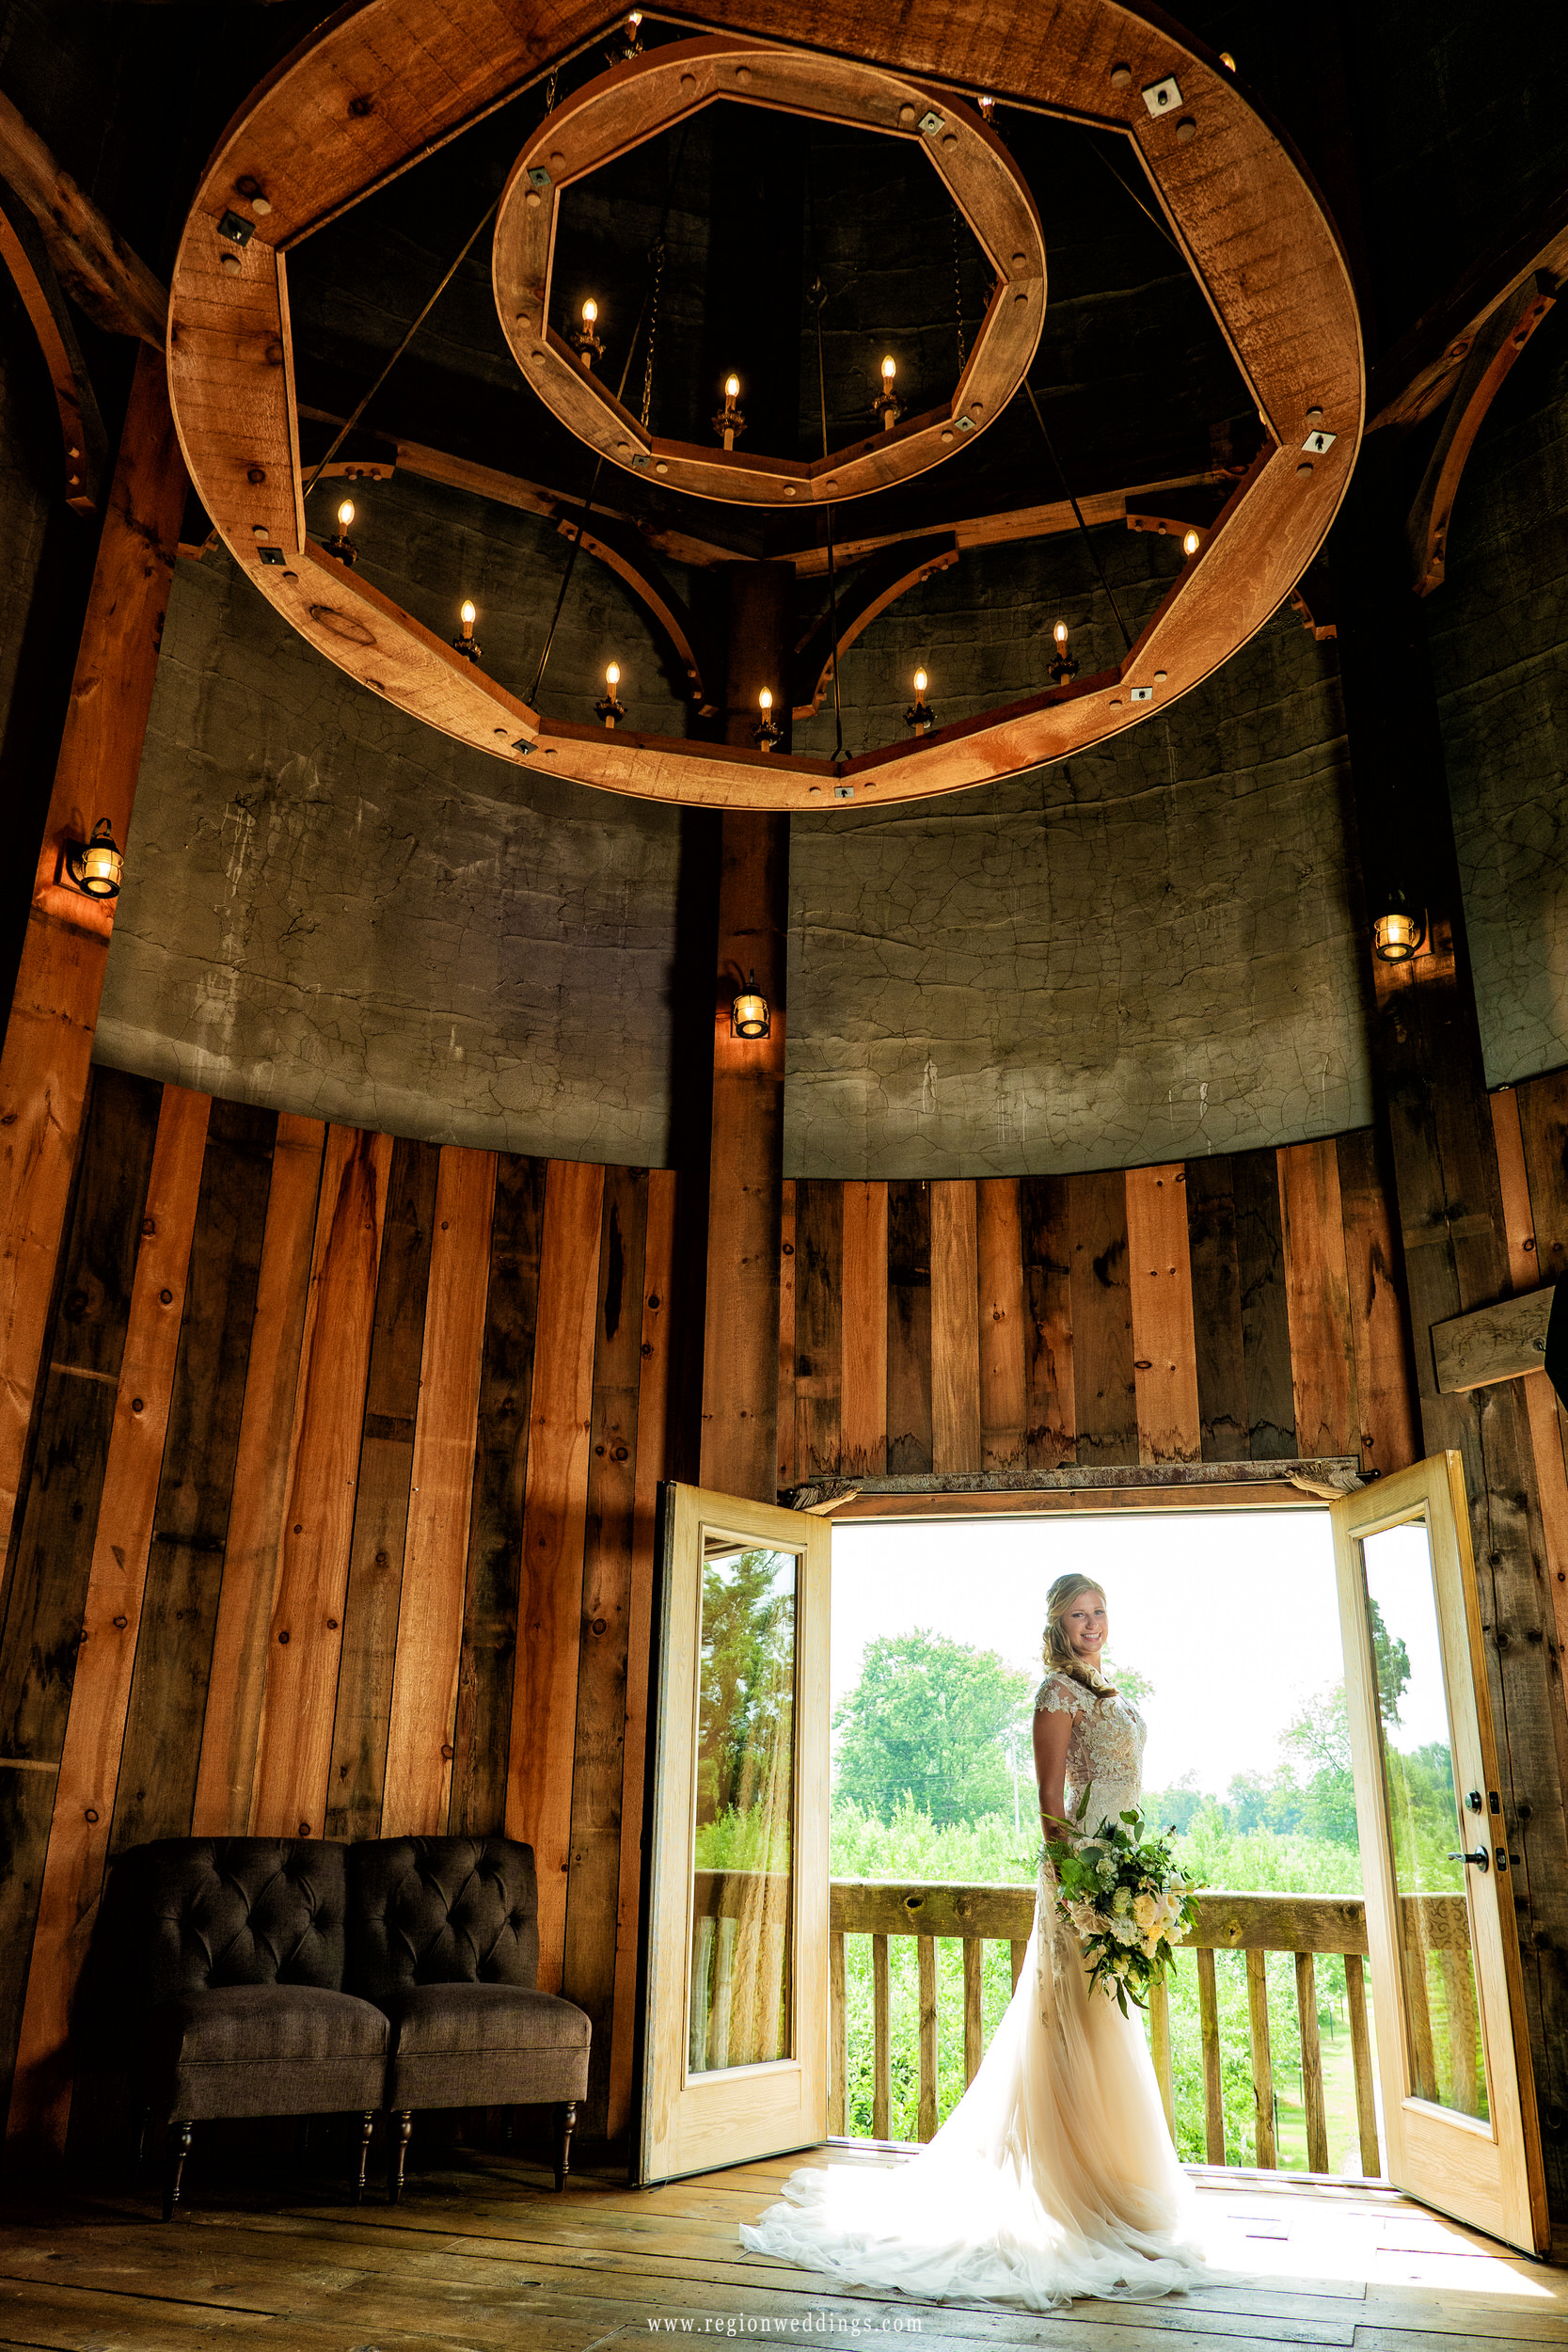 A lighted chandelier towers over the bride inside the grain silo at County Line Orchard.